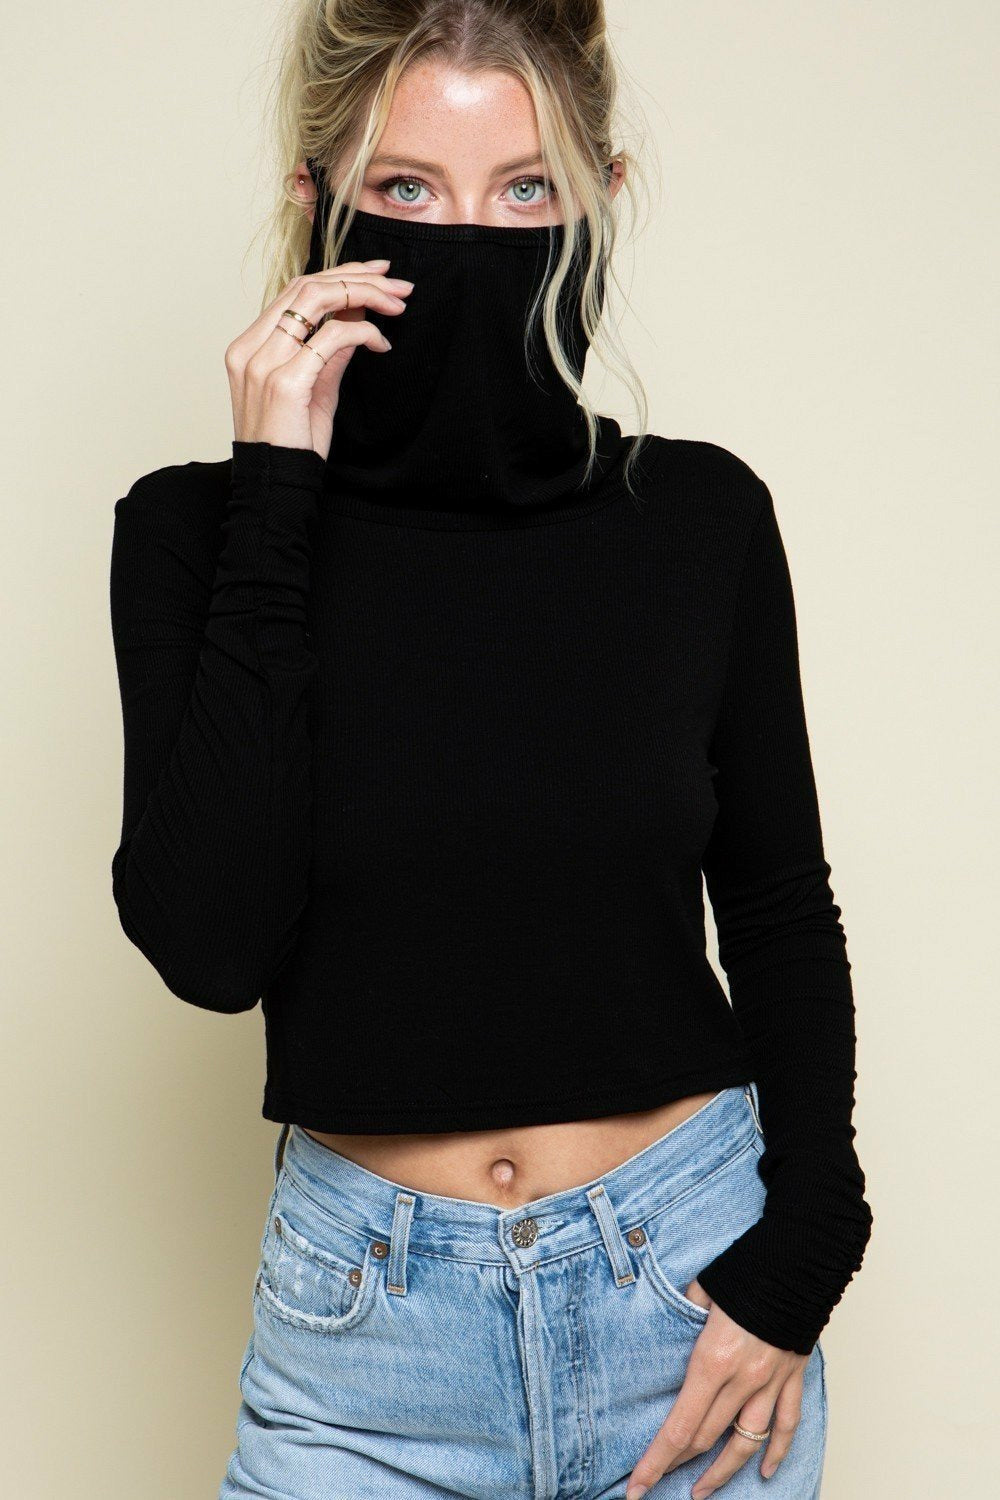 mission-lane,Mask On Knit Top,Tops.